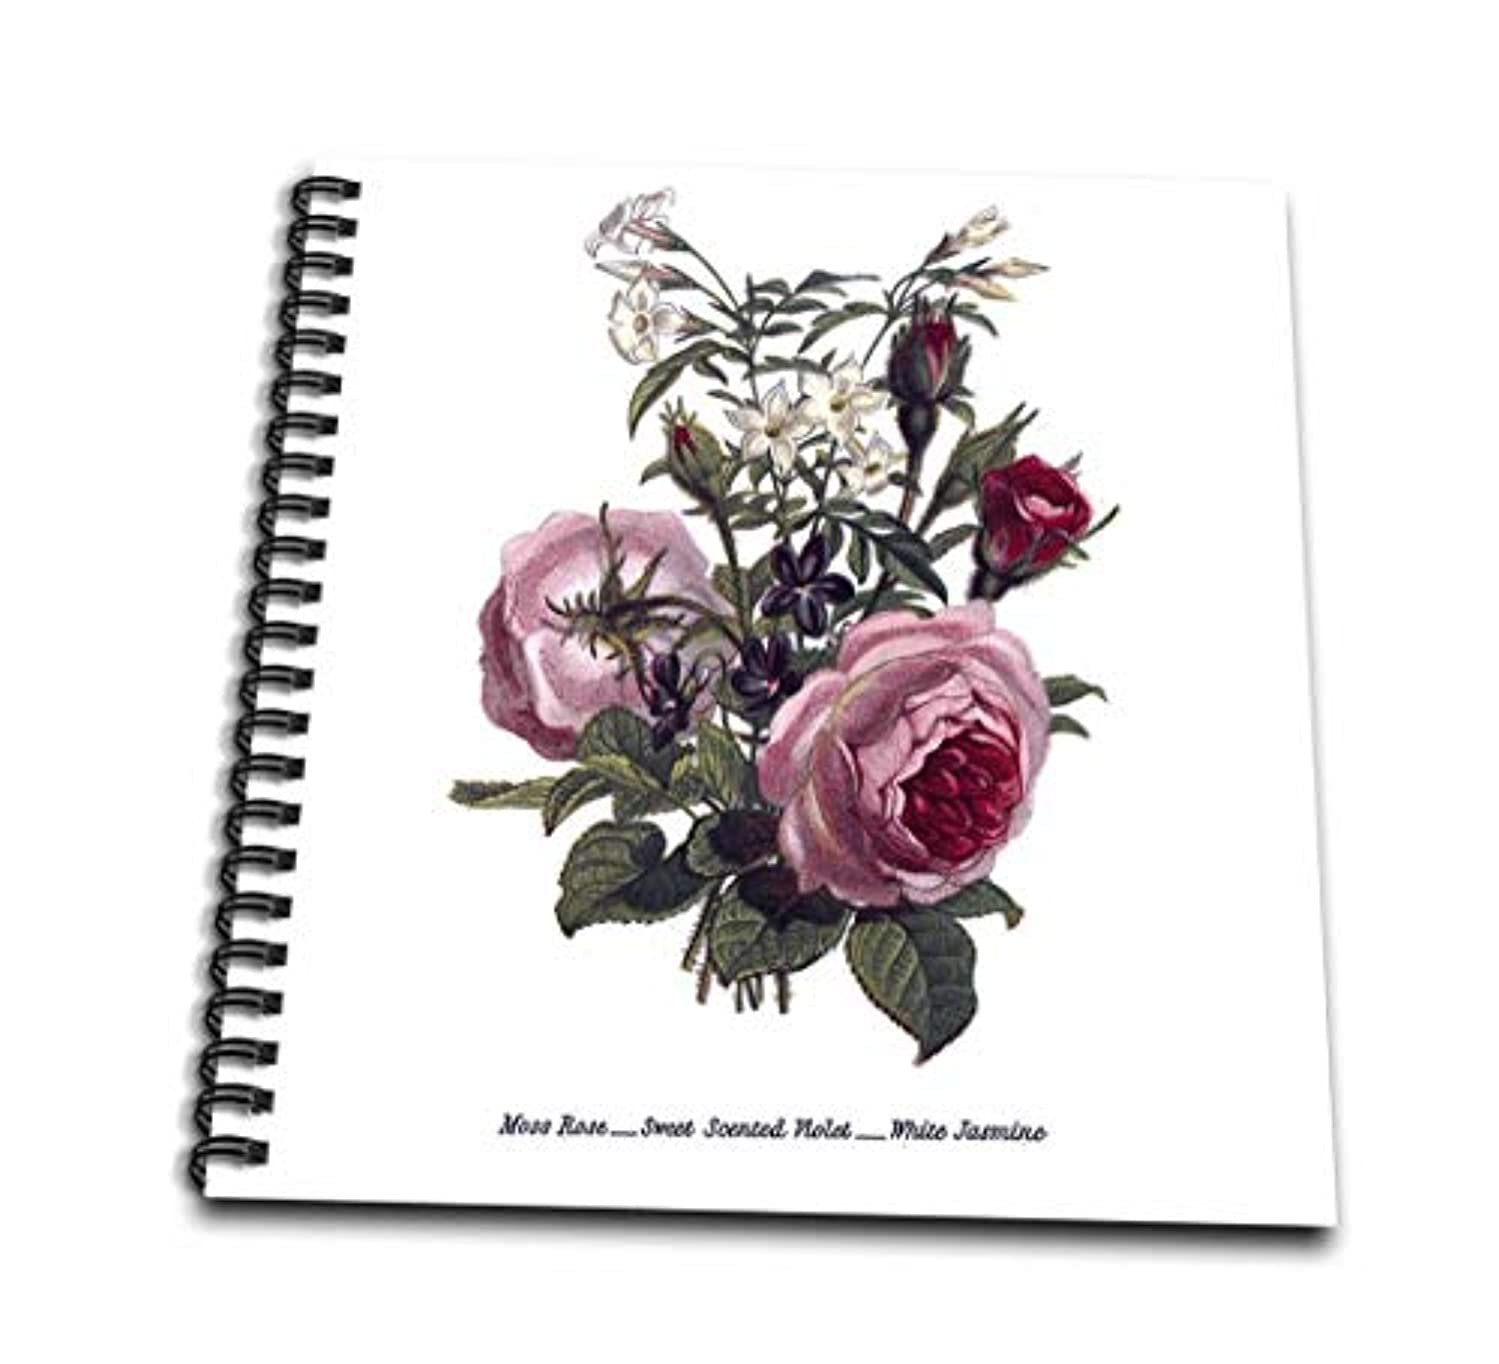 3dRose db_149625_2 Vintage Flowers Moss Rose Sweet Scented Violet White Jasmine Flowers in Pink and White Memory Book, 12 by 12